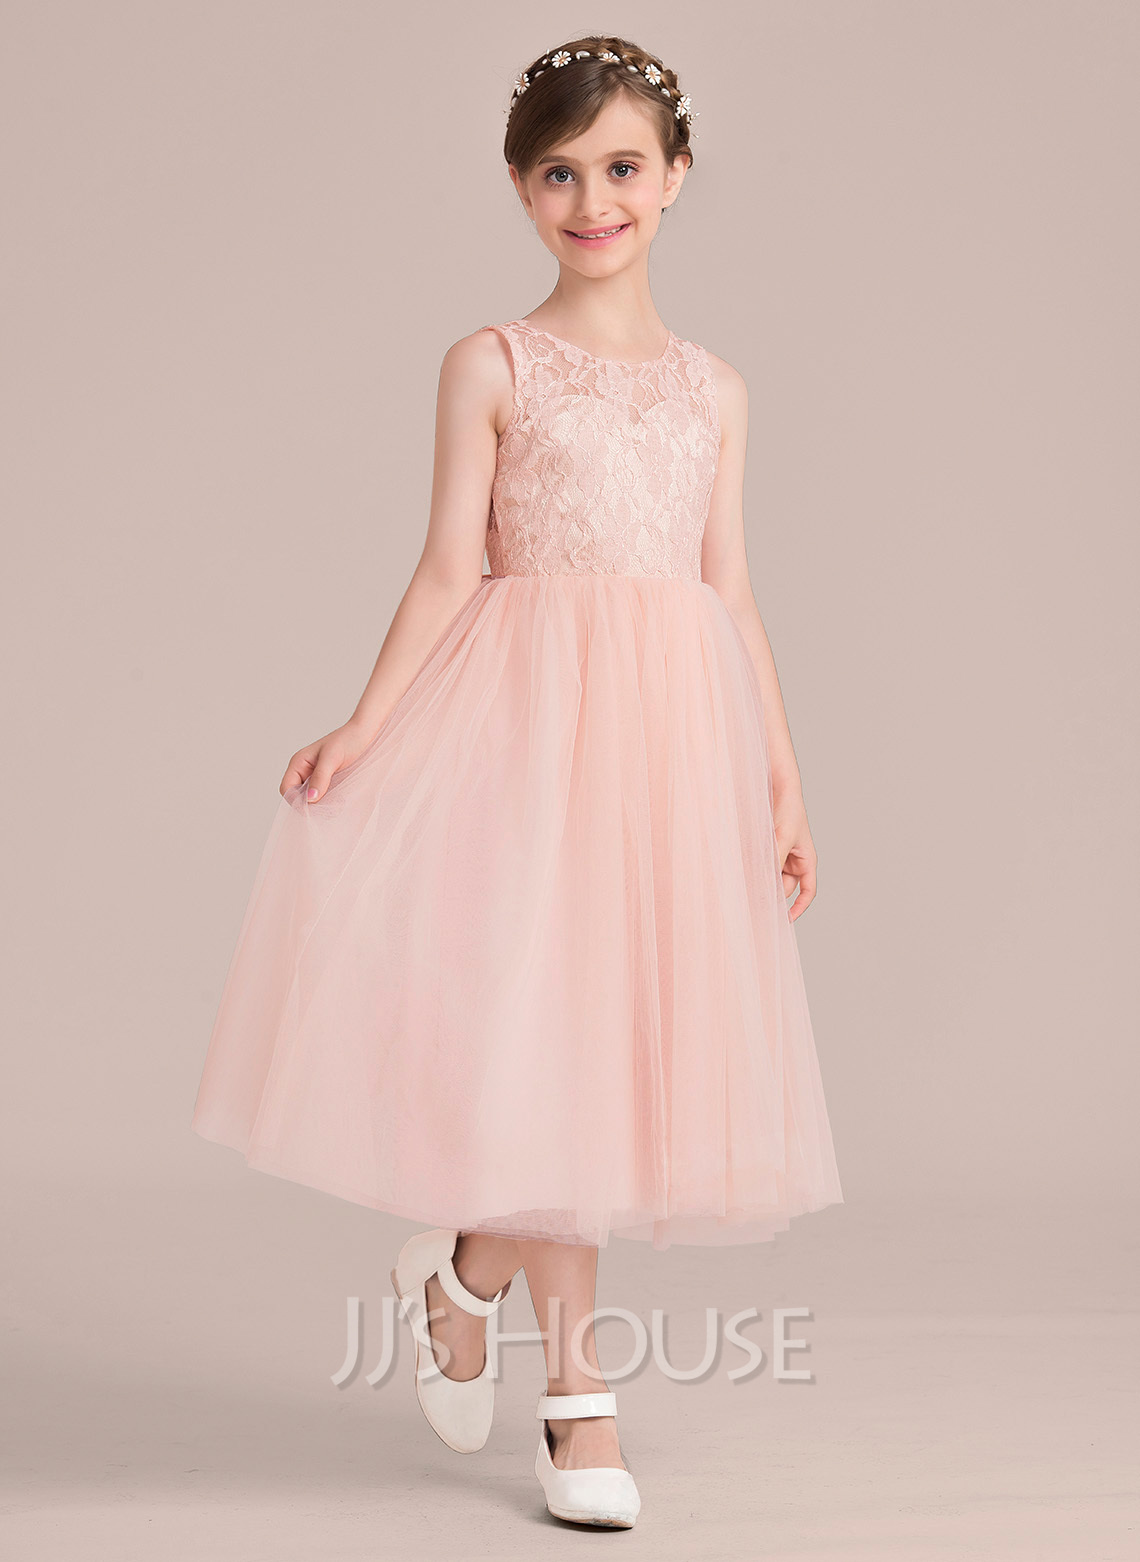 A-Line/Princess Scoop Neck Tea-Length Tulle Junior Bridesmaid Dress With Beading Bow(s)